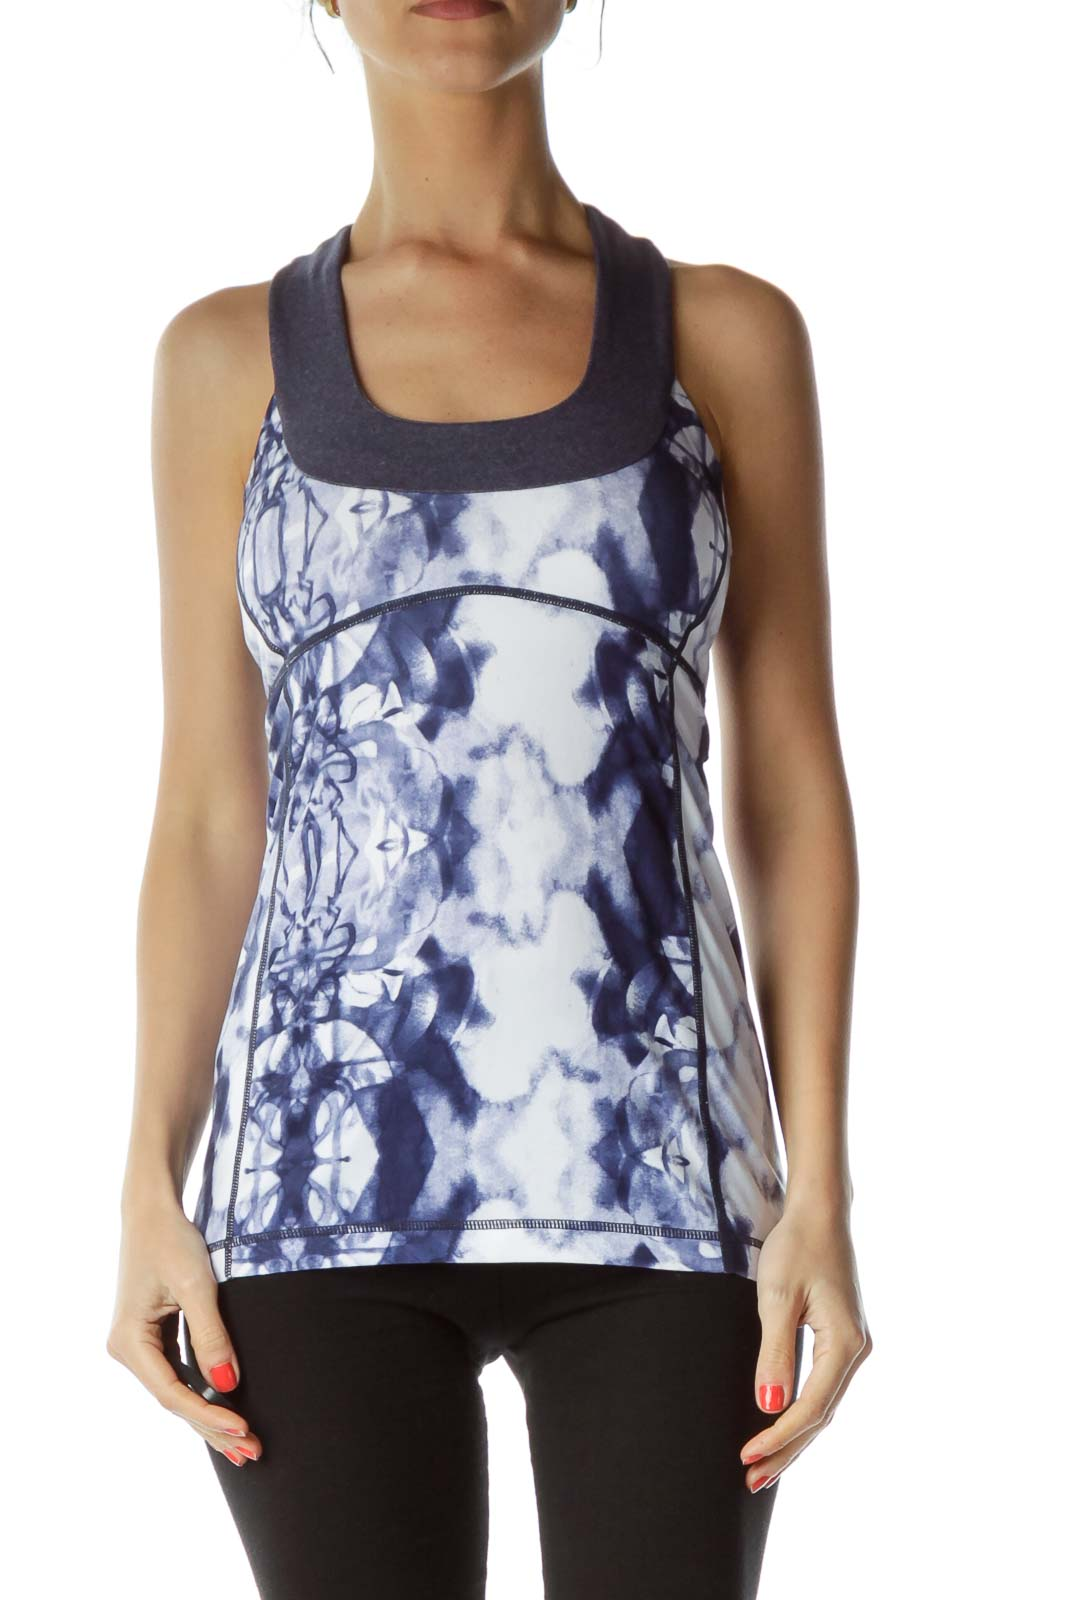 Blue White Racerback Tie Dye Yoga Top